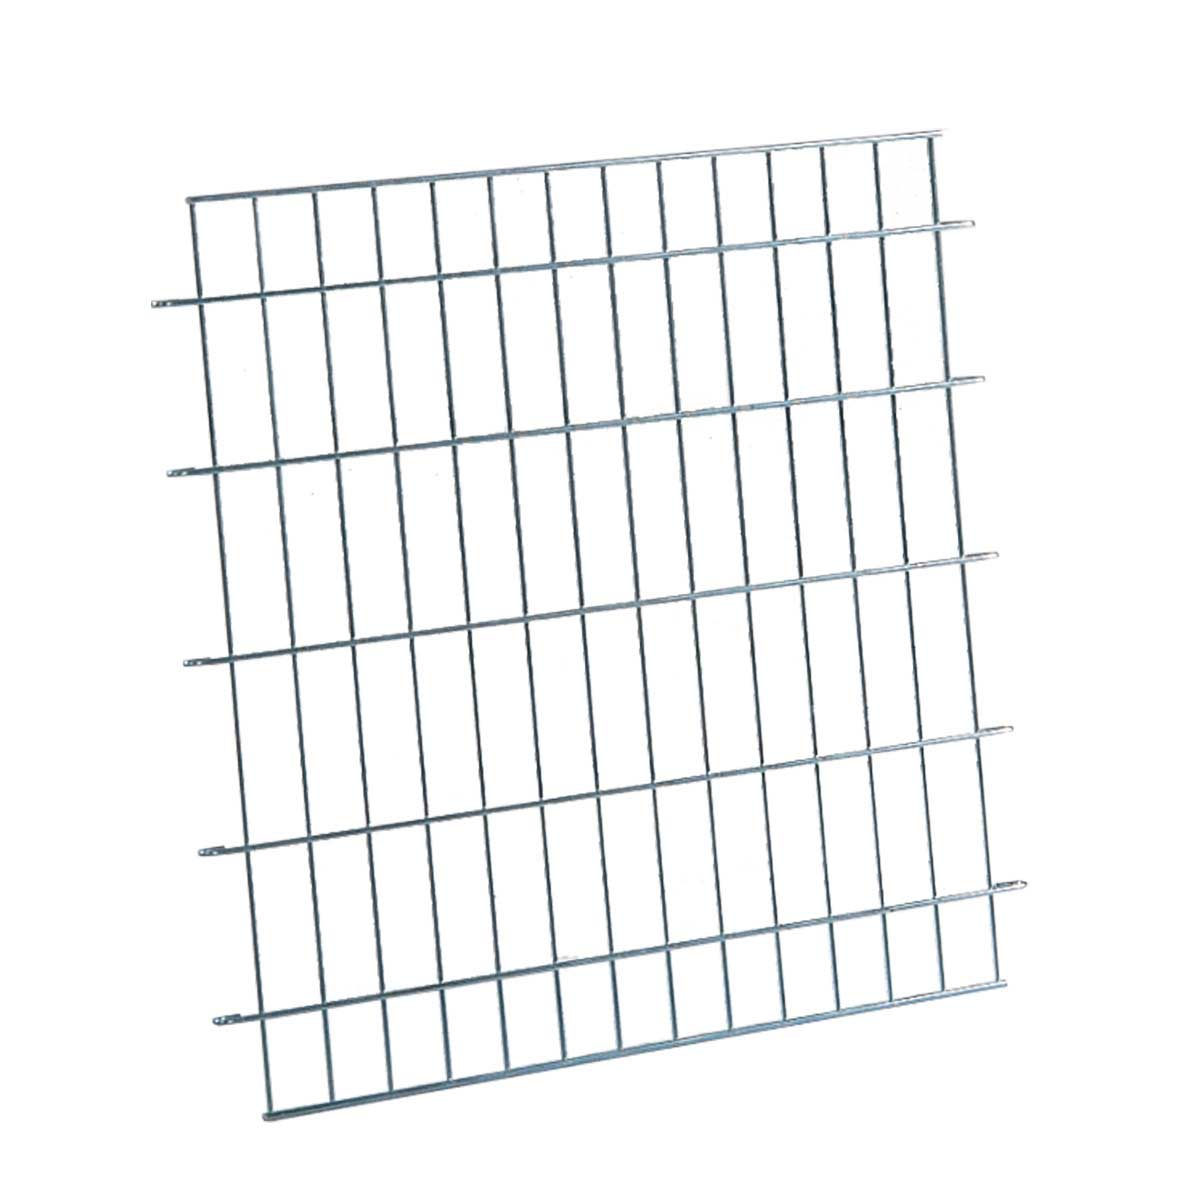 Midwest Divider Panel For M1624, M1624DD, M724UP Kennels